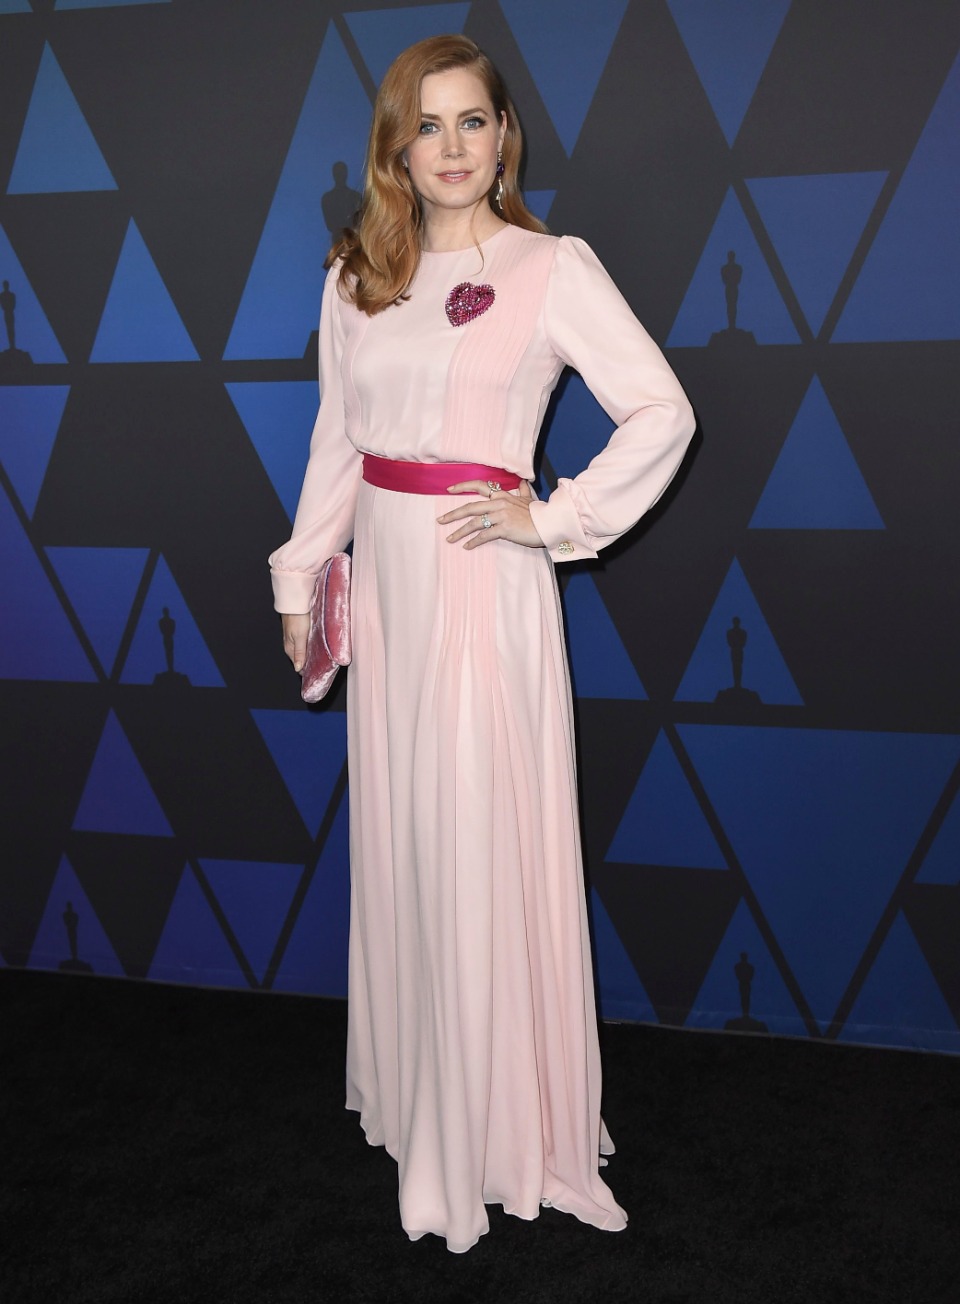 <p>The actor wore a blush pink gown by Schiaparelli at the 10th annual Governors Awards at the Ray Dolby Ballroom in Los Angeles. She also carried the Tyler Ellis Lee Pouchet. [Photo:<em> Rex]</em> </p>